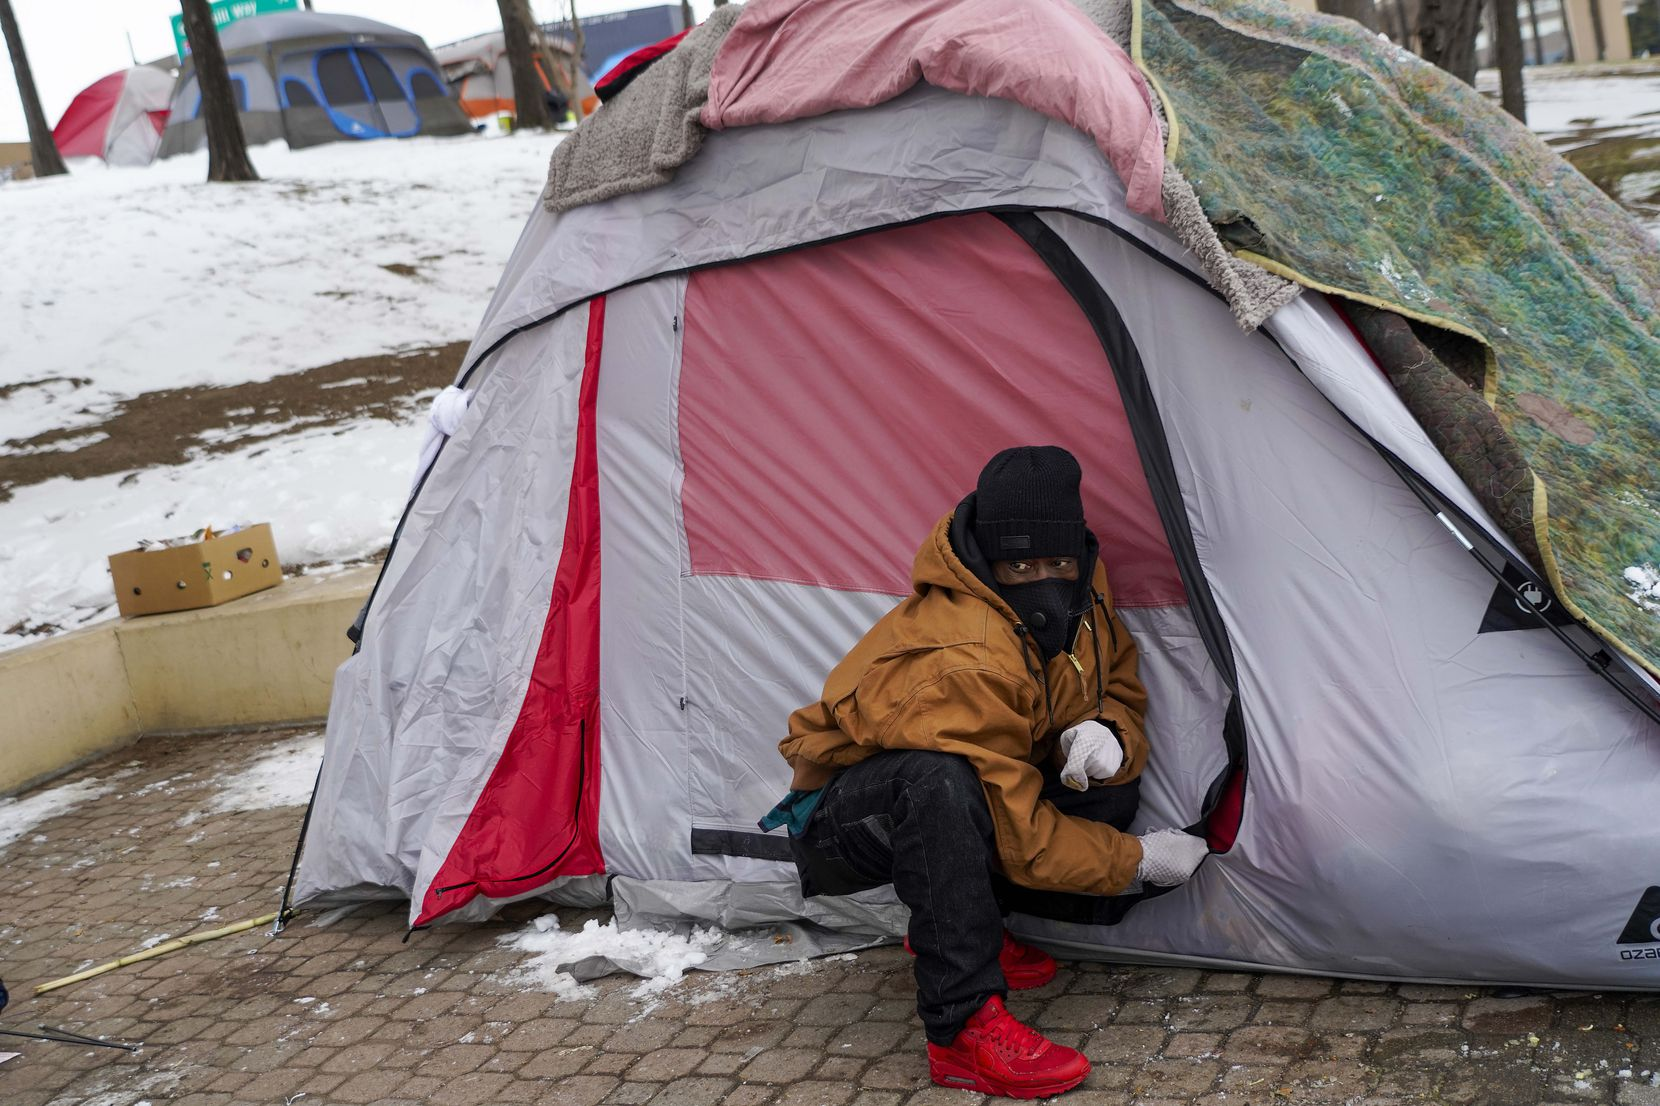 Carlos Jackson zips up the tent he is living in with two other homeless men at Forest Lane and North Central Expressway in Dallas on Tuesday, Feb. 16, 2021.